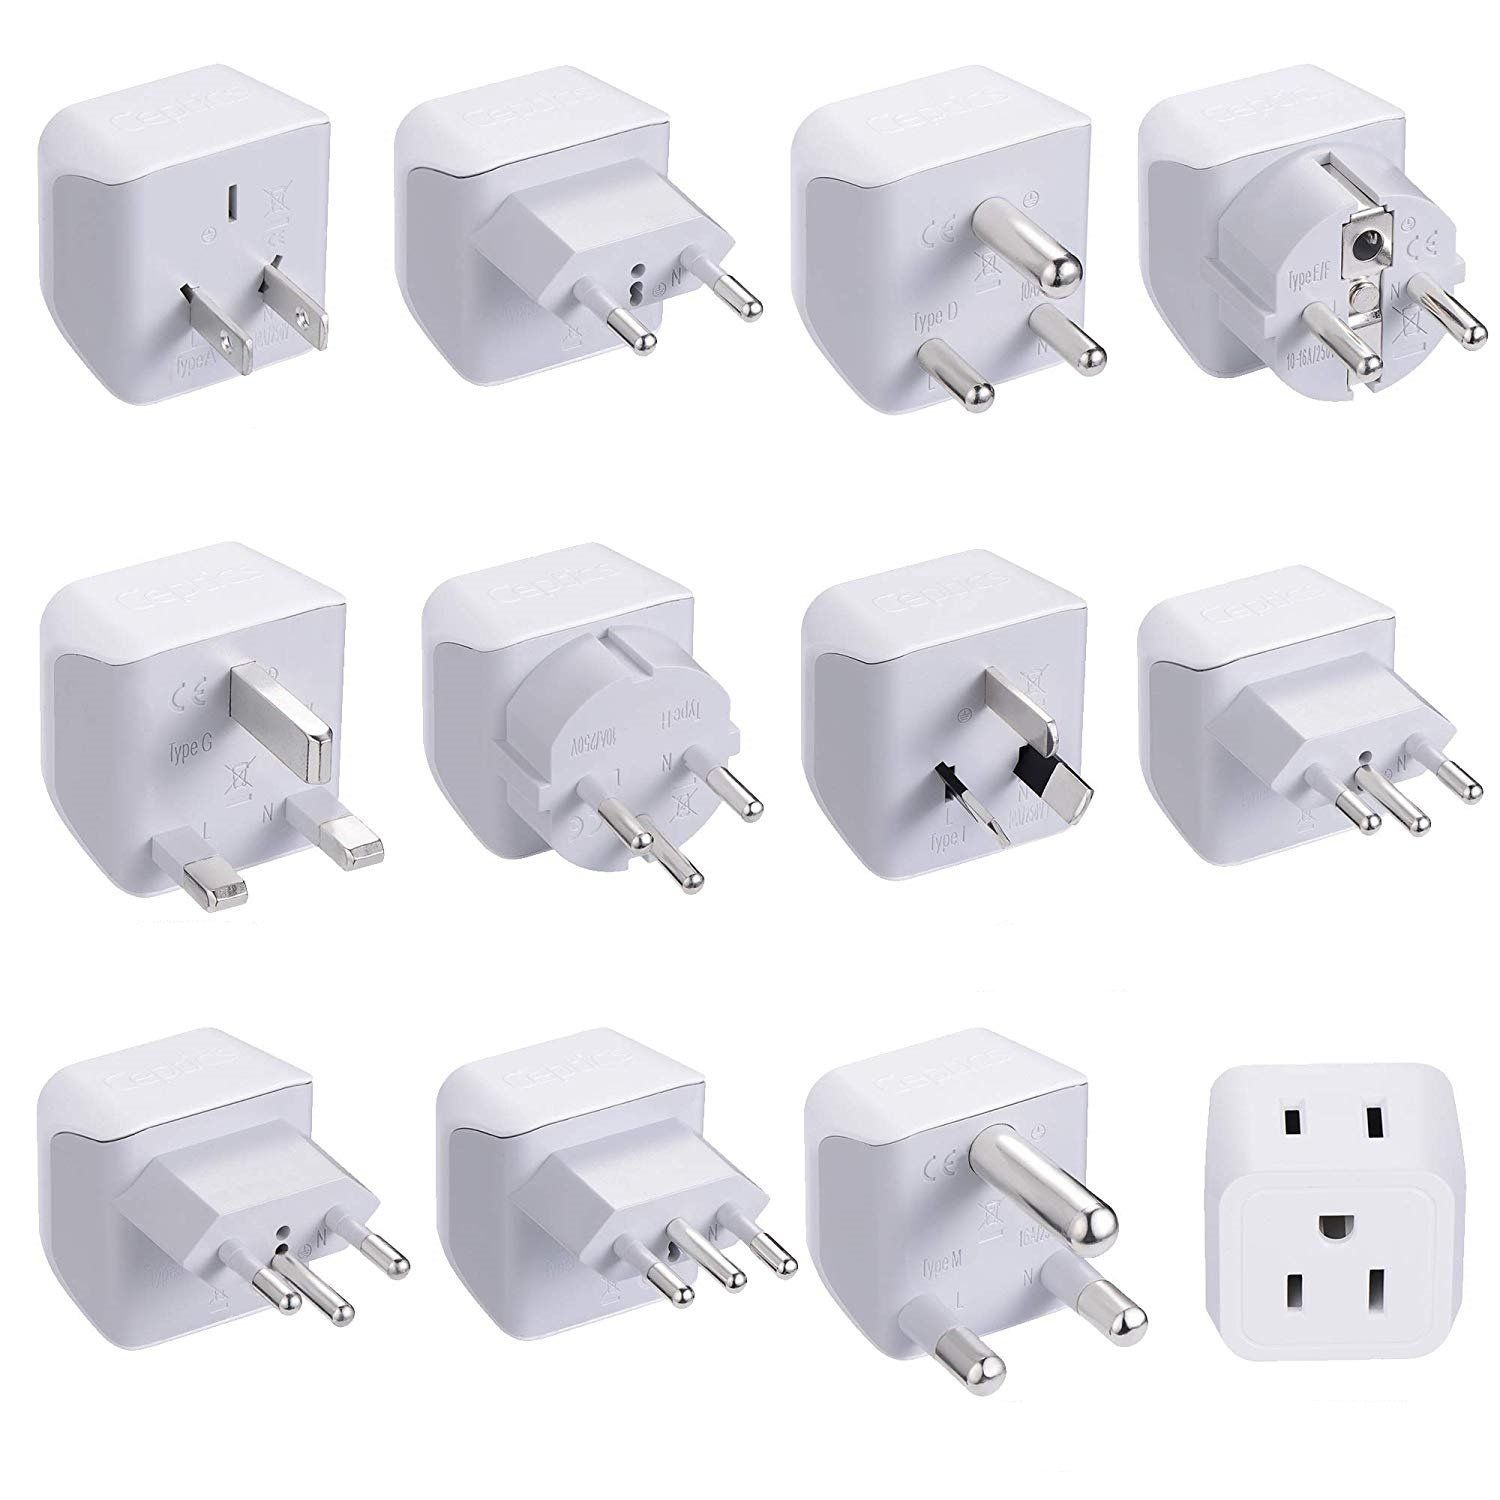 Ceptics USA to Europe Asia Plug Adapter High Quality-CE Certified-RoHS Compliant-6 Pack